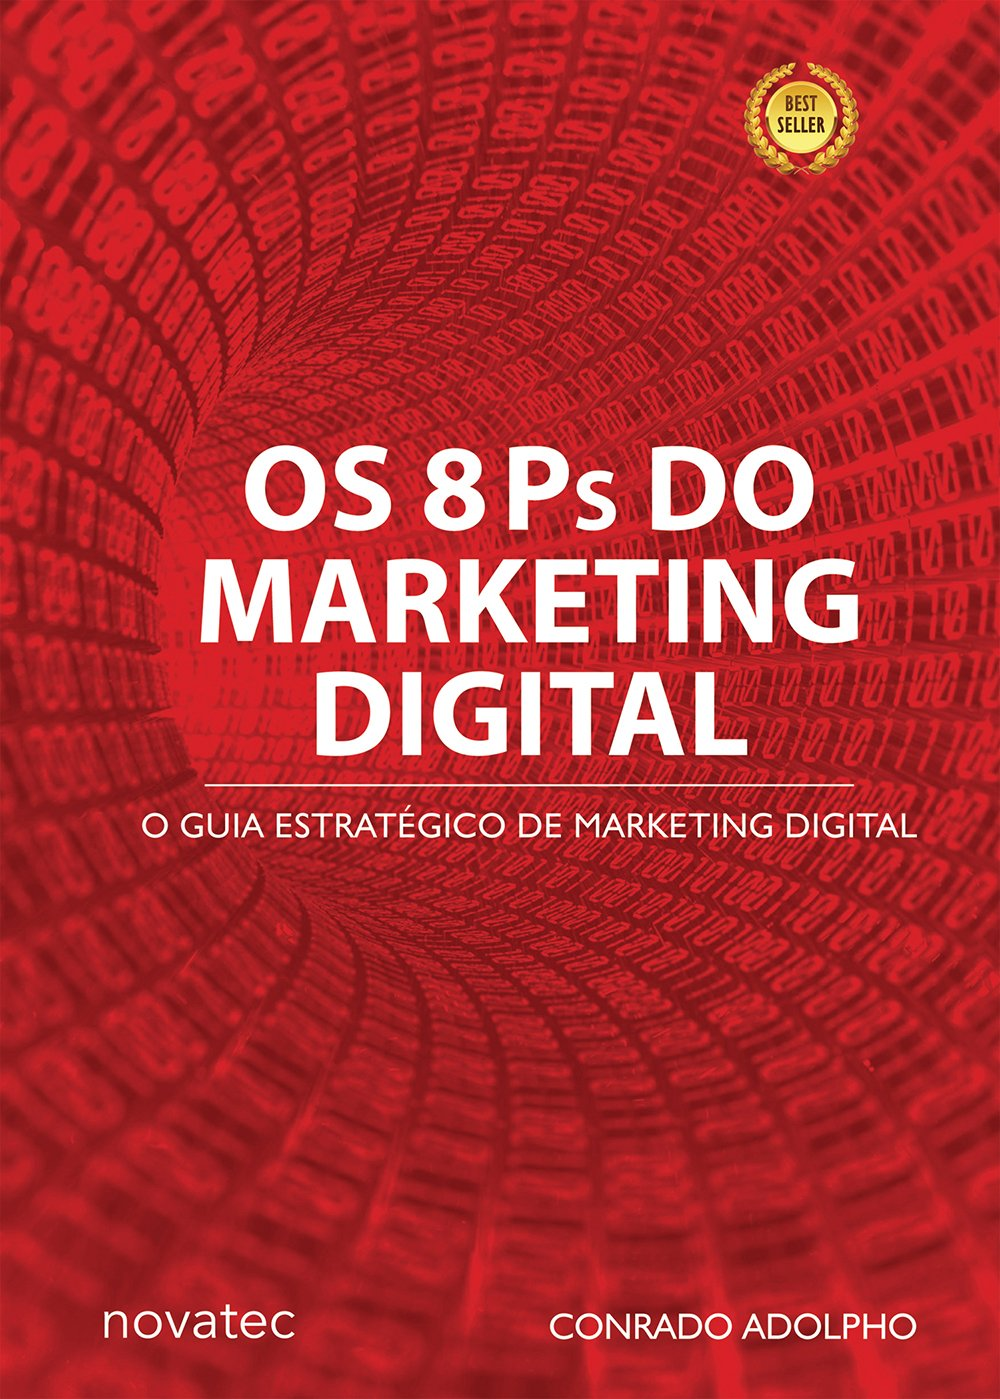 Os 8 Ps do Marketing Digital | Conrado Adolpho